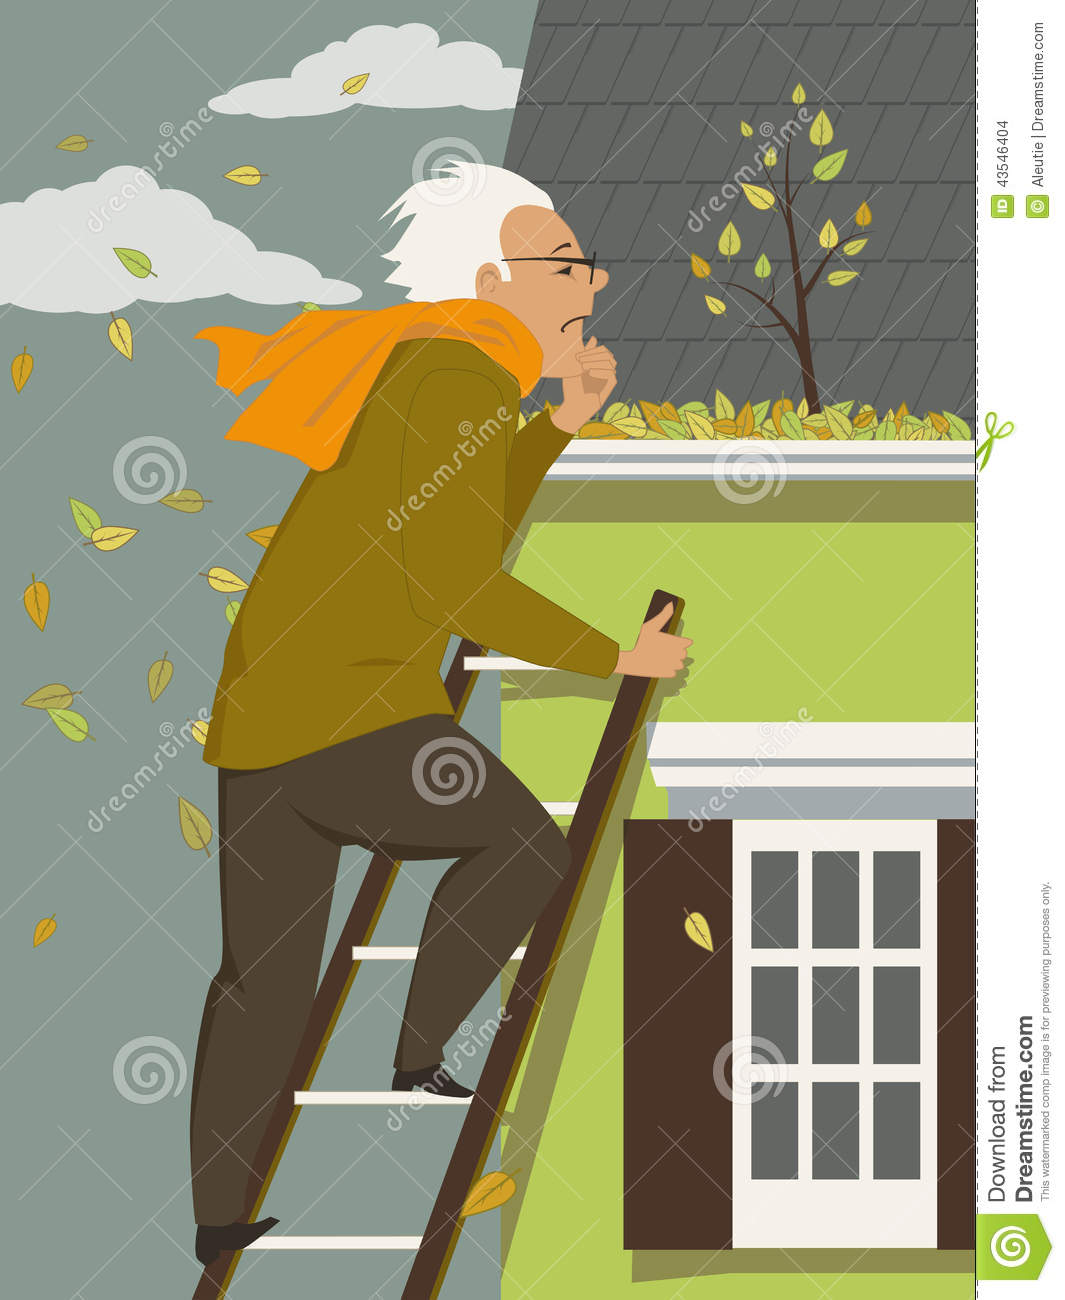 Cleaning A Rain Gutter Stock Vector Image 43546404